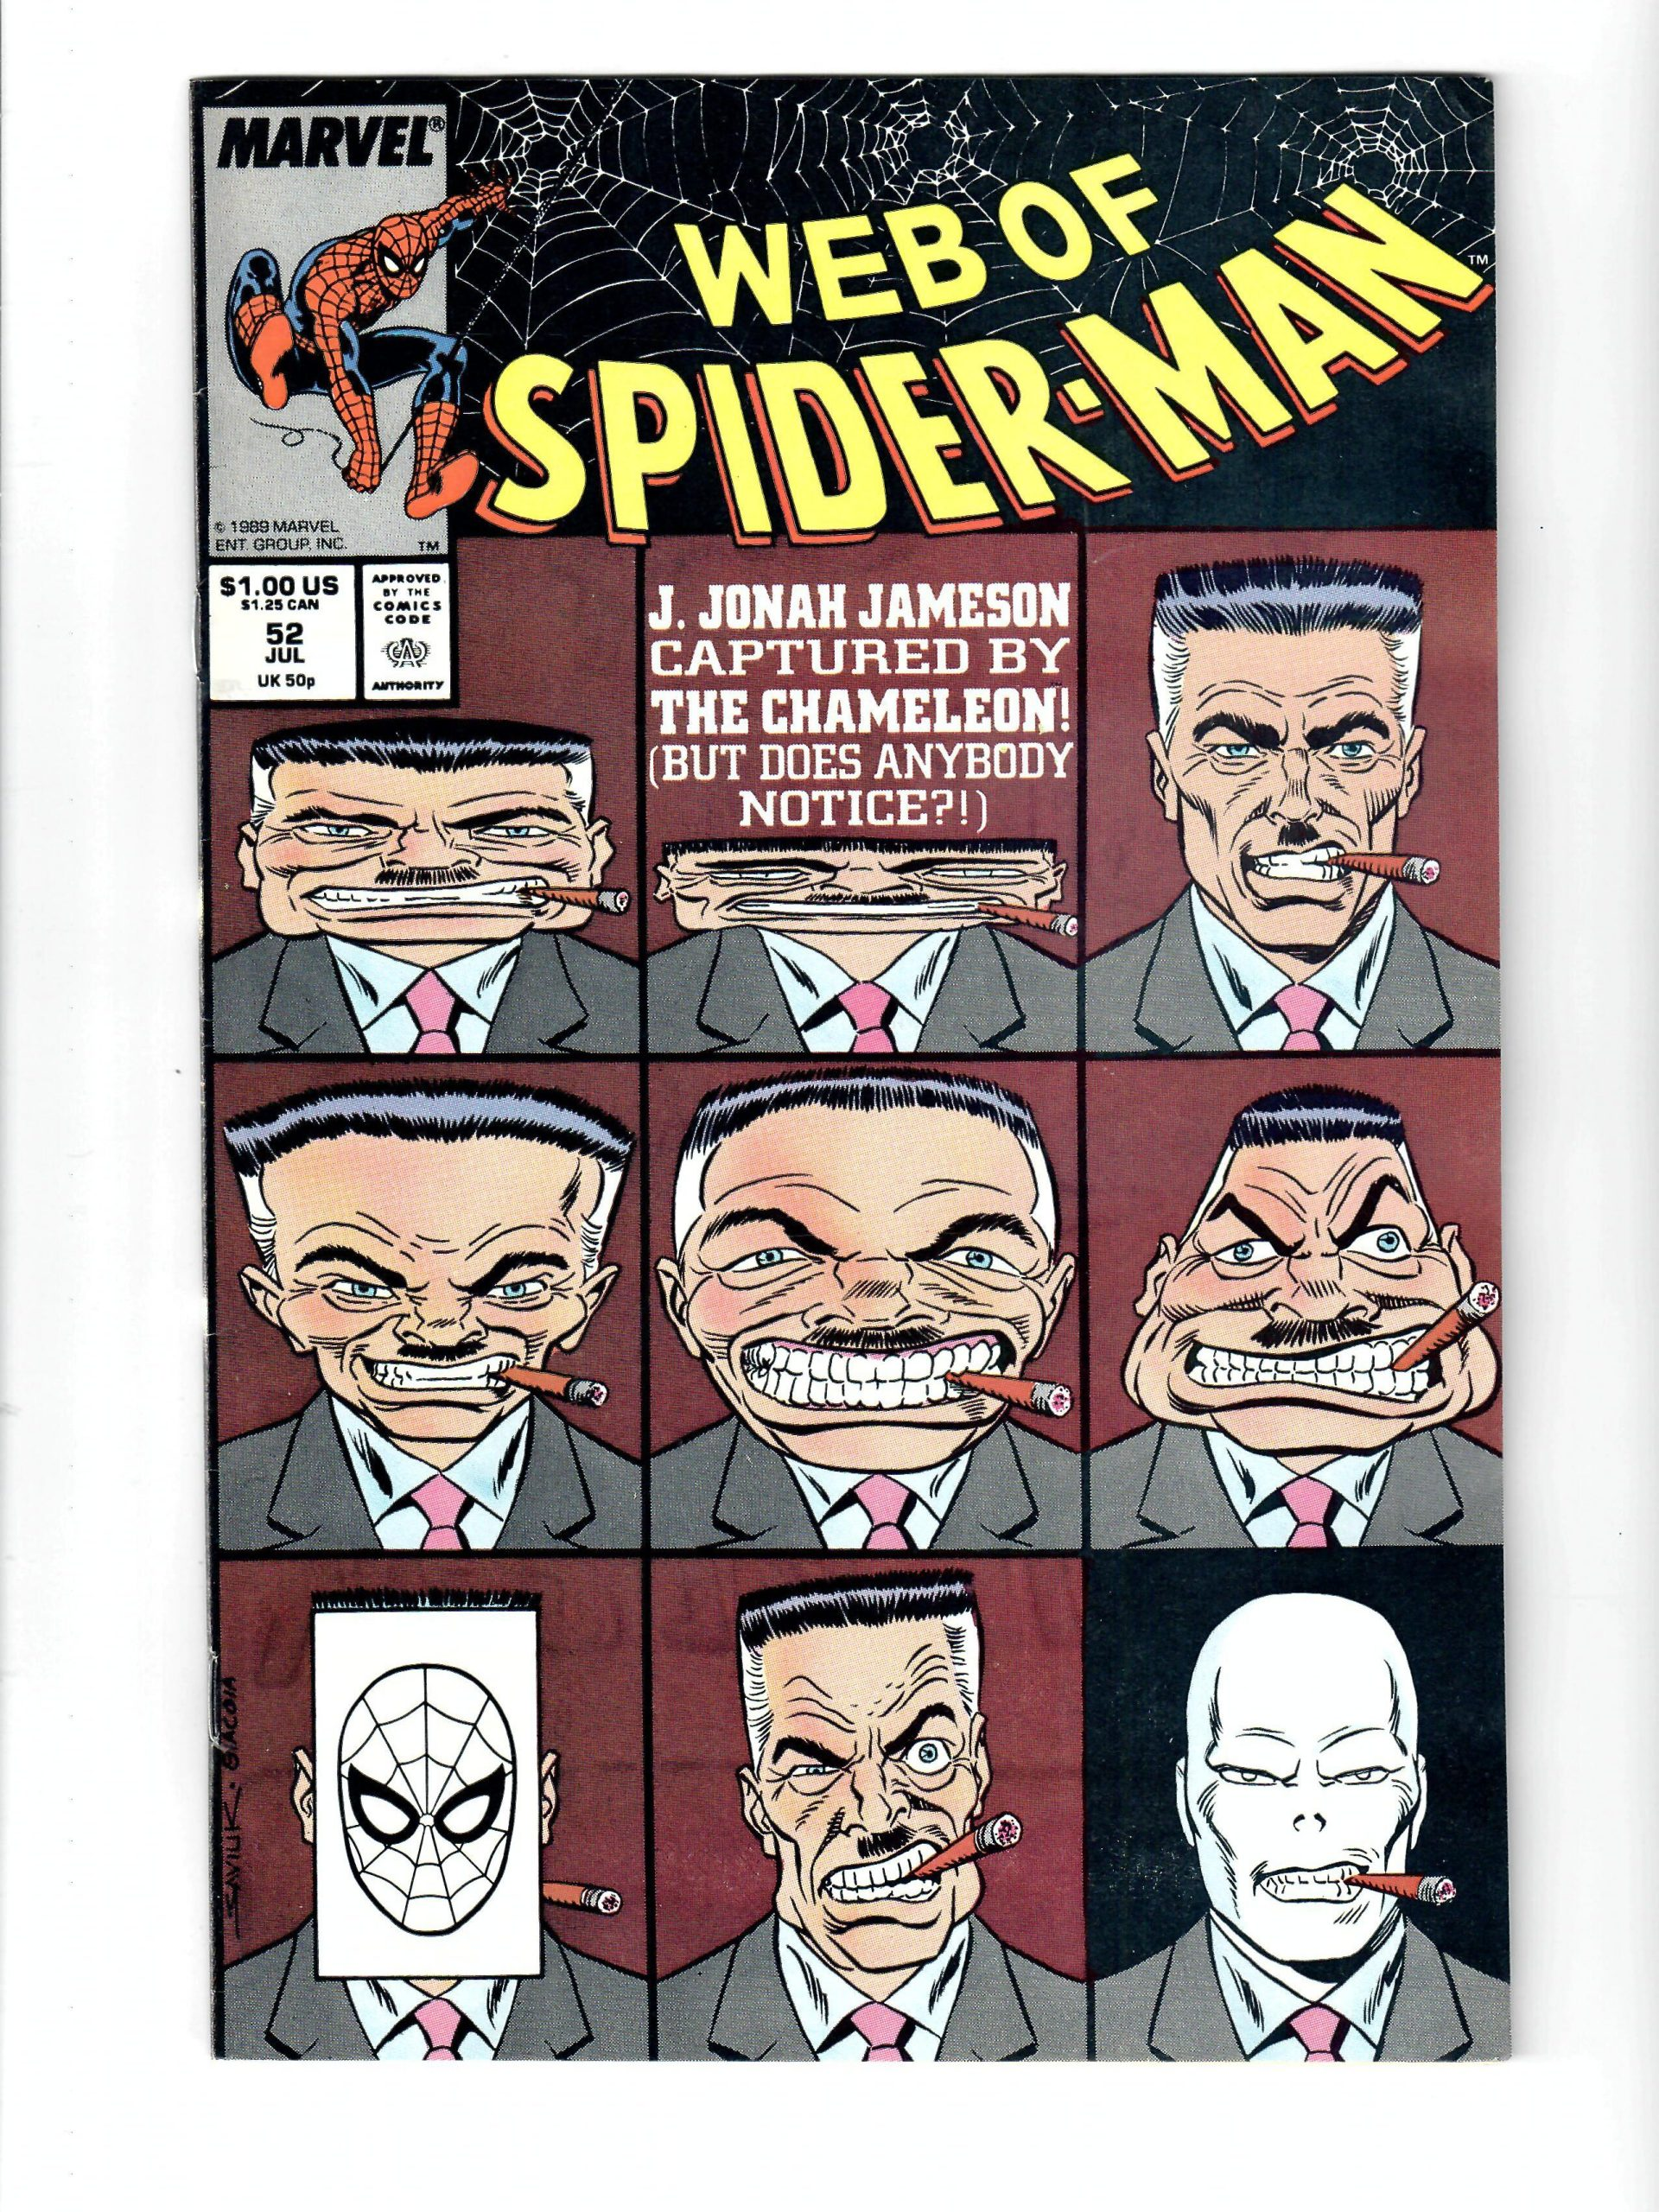 Marvel Comics Web Of Spider-Man #52 Jul 1989 Comic #141830-10